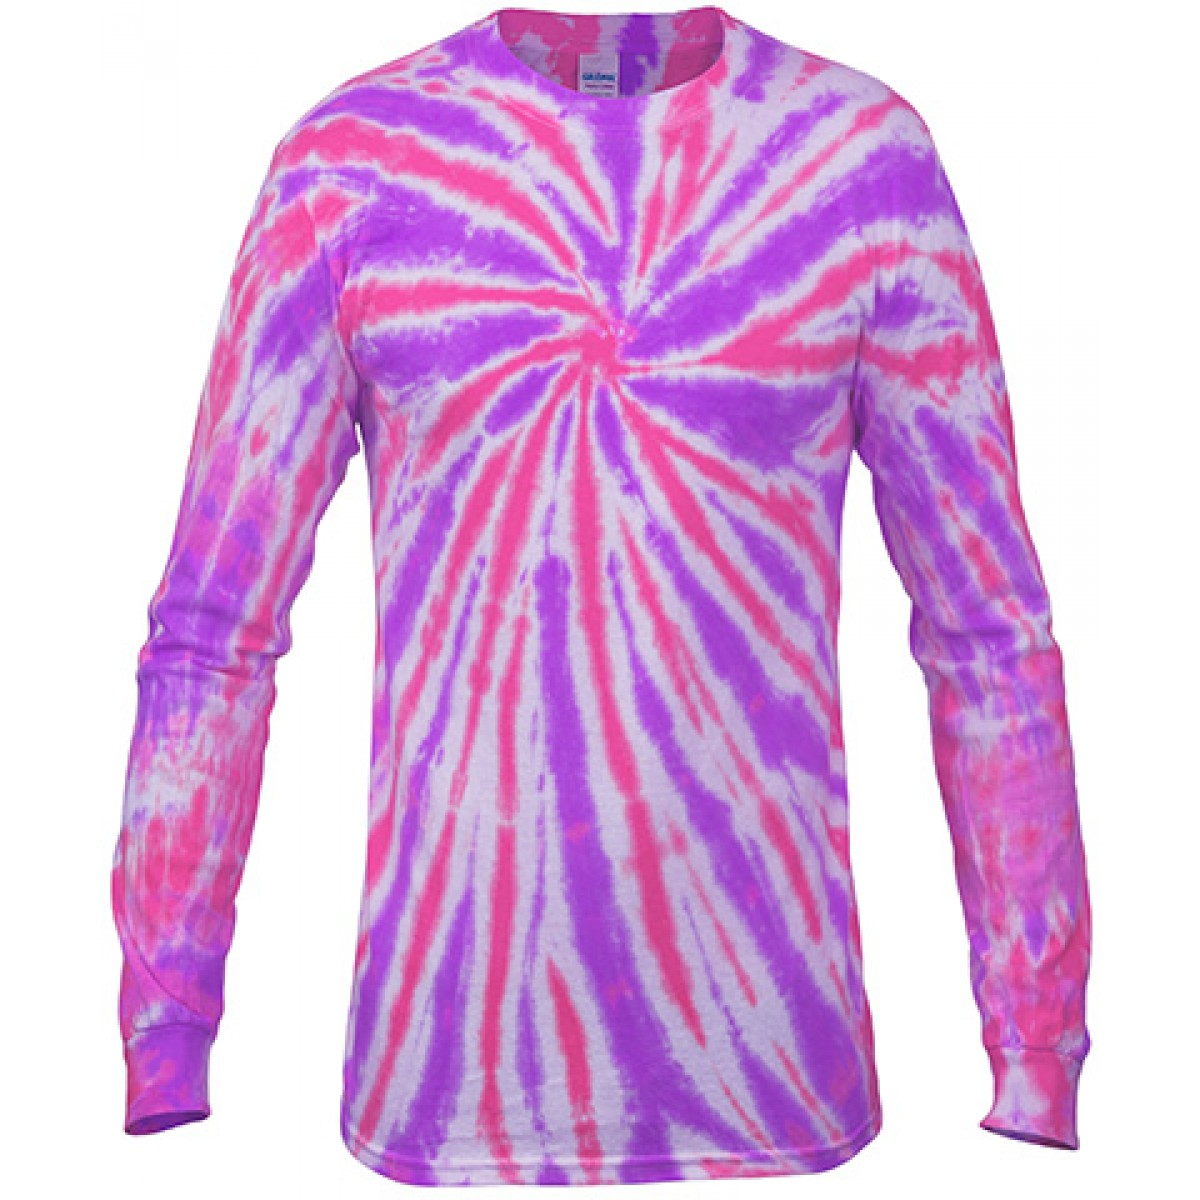 Multi Color Tie-Dye Long Sleeve Shirt -Purple-L